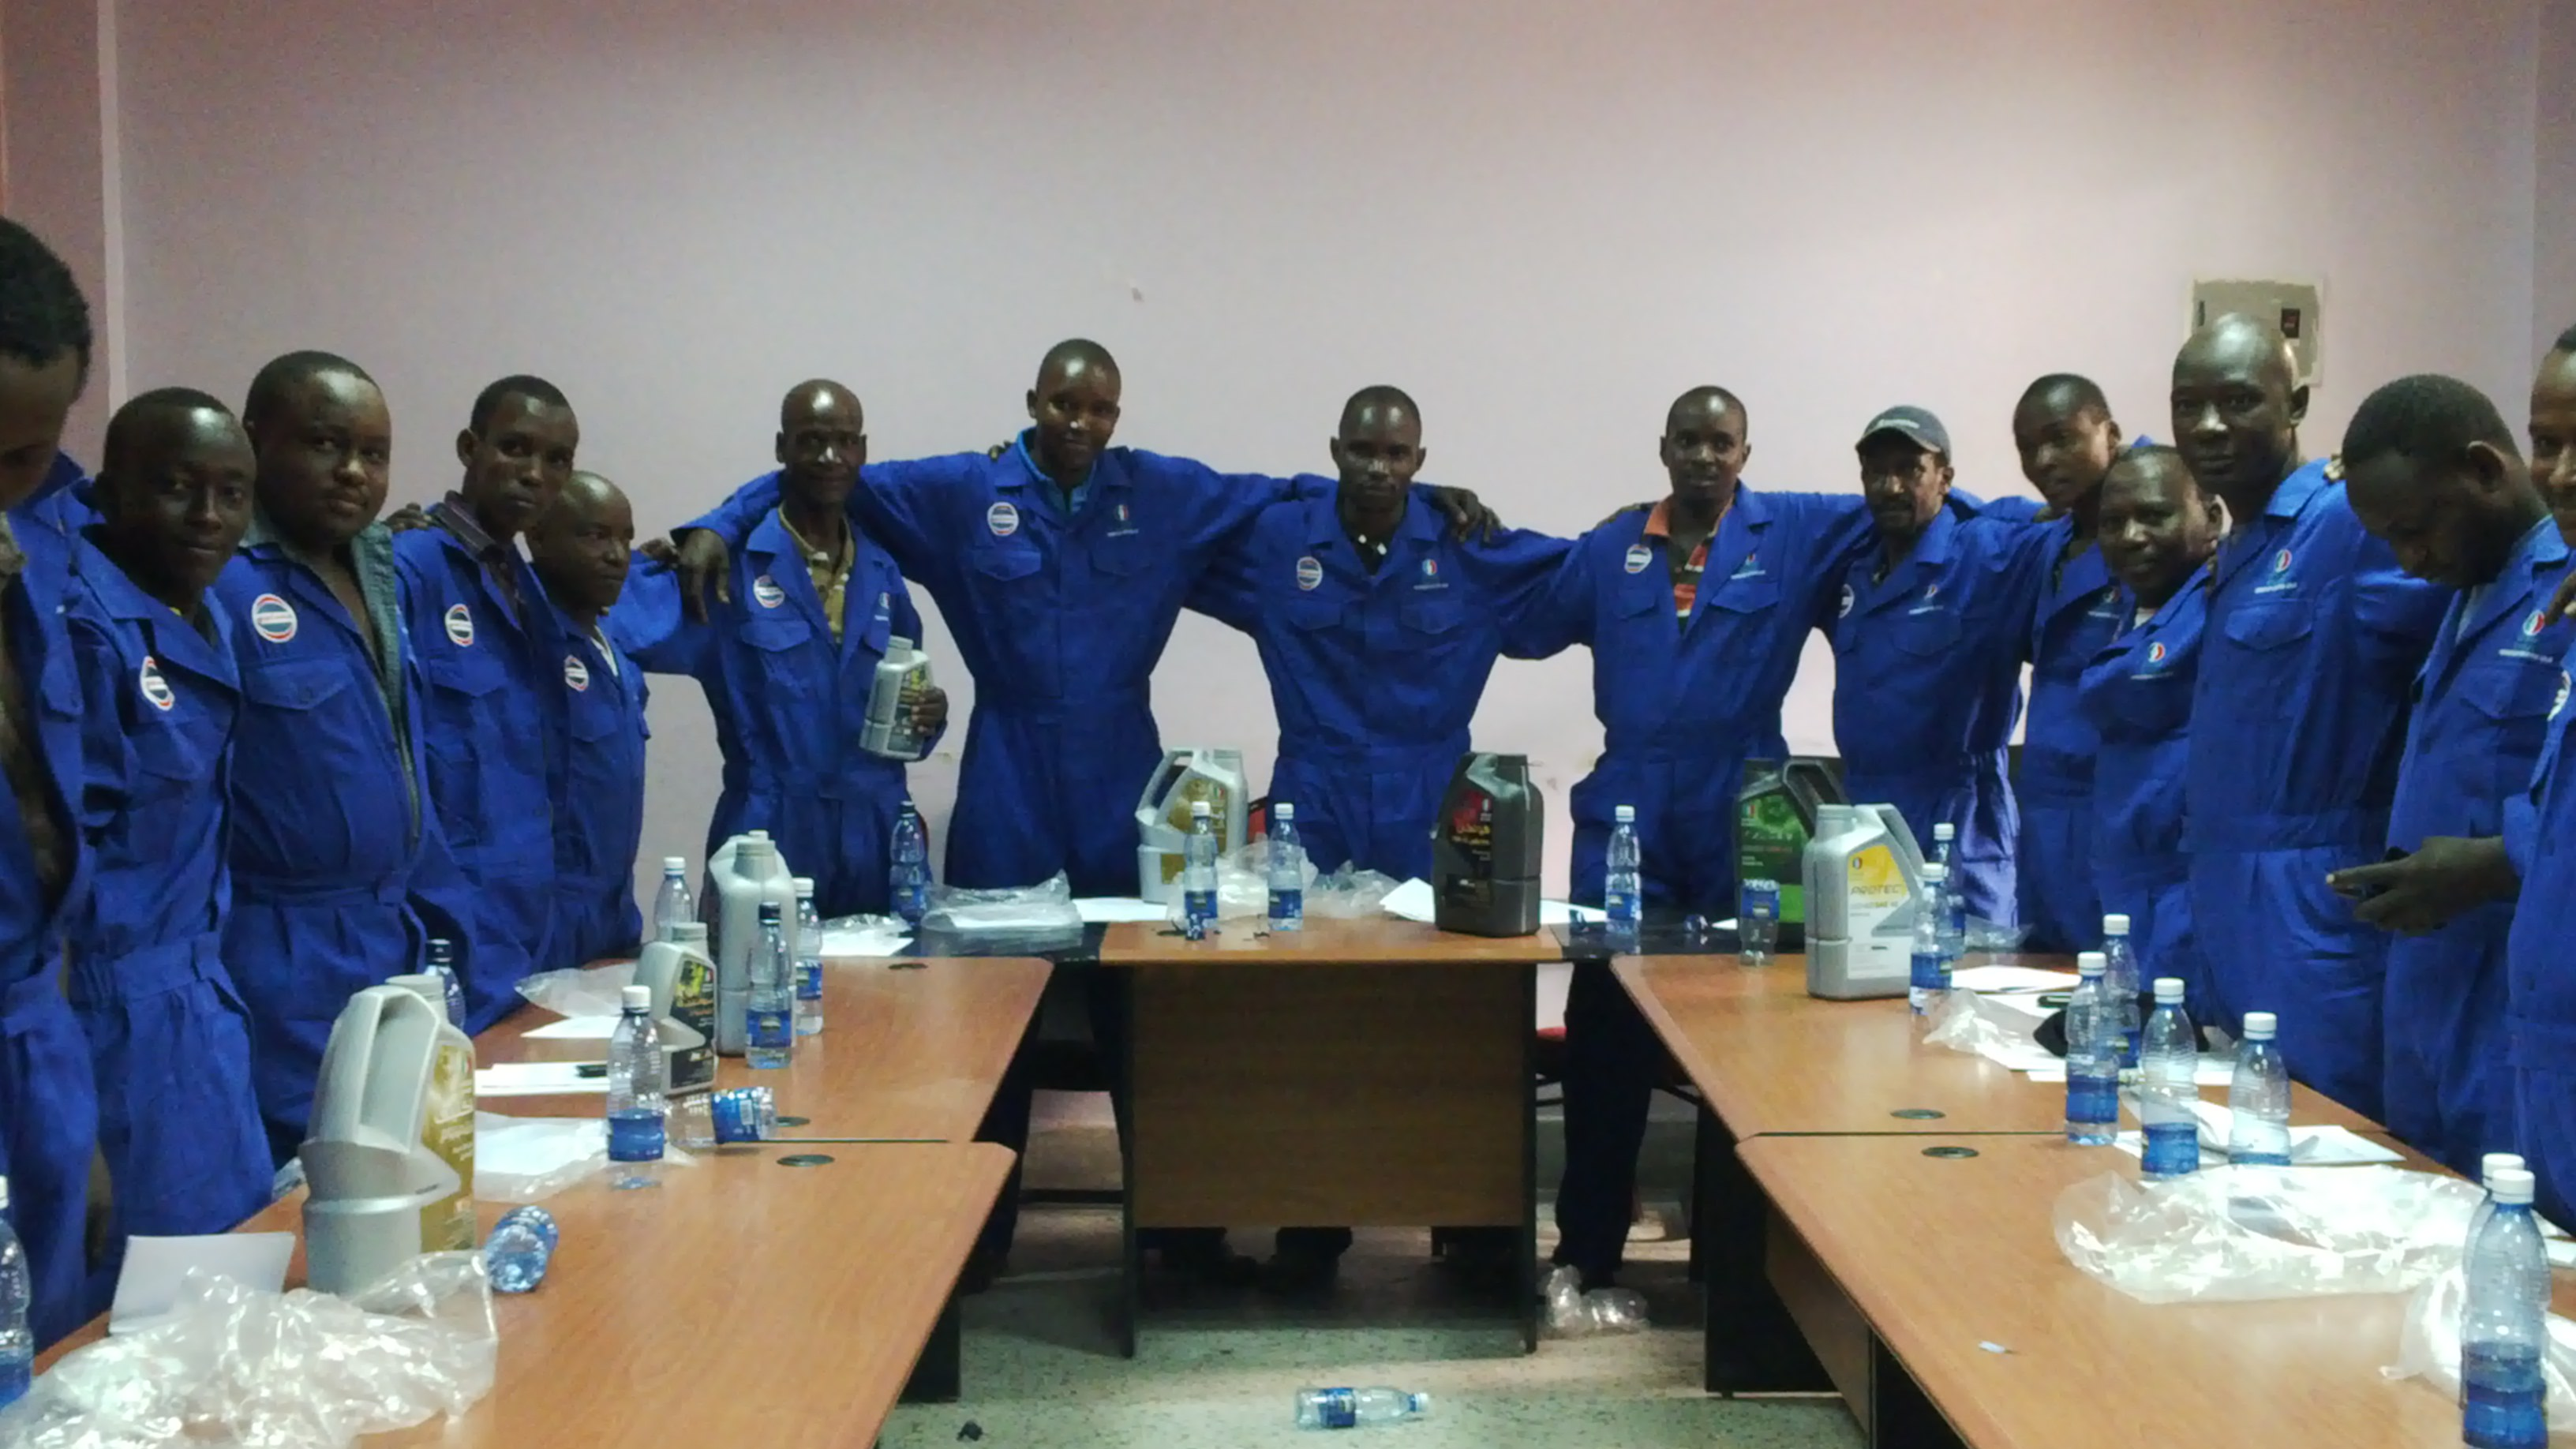 Enoc Lubricants Training